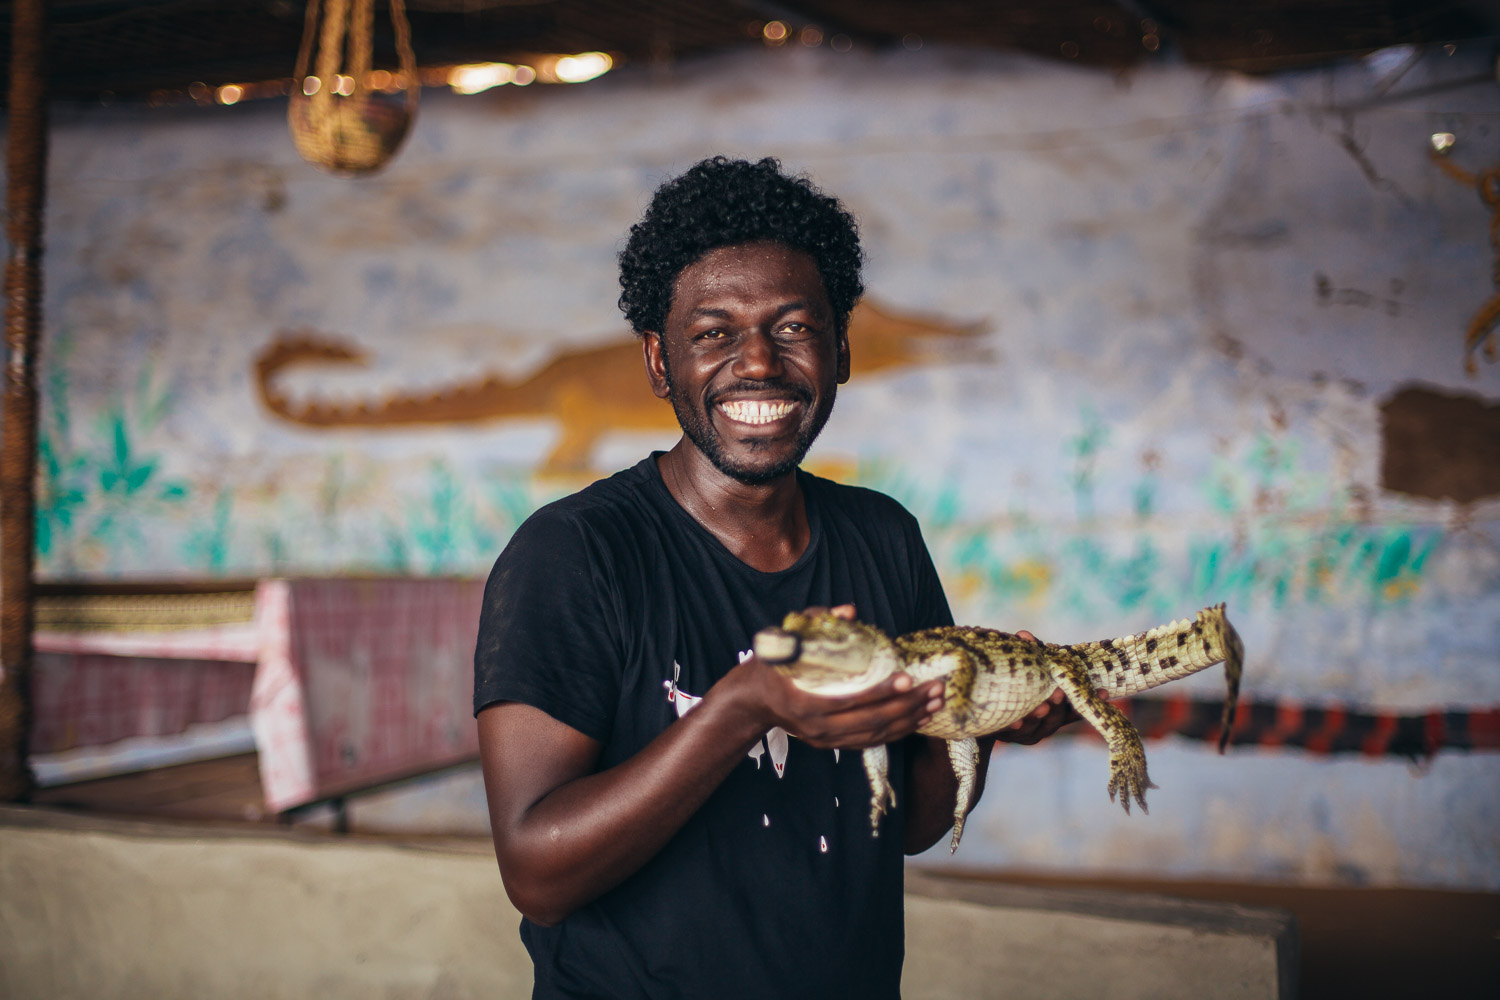 No there is no image of me holding the baby croc, however I present you with a picture of Mohamed holding one.